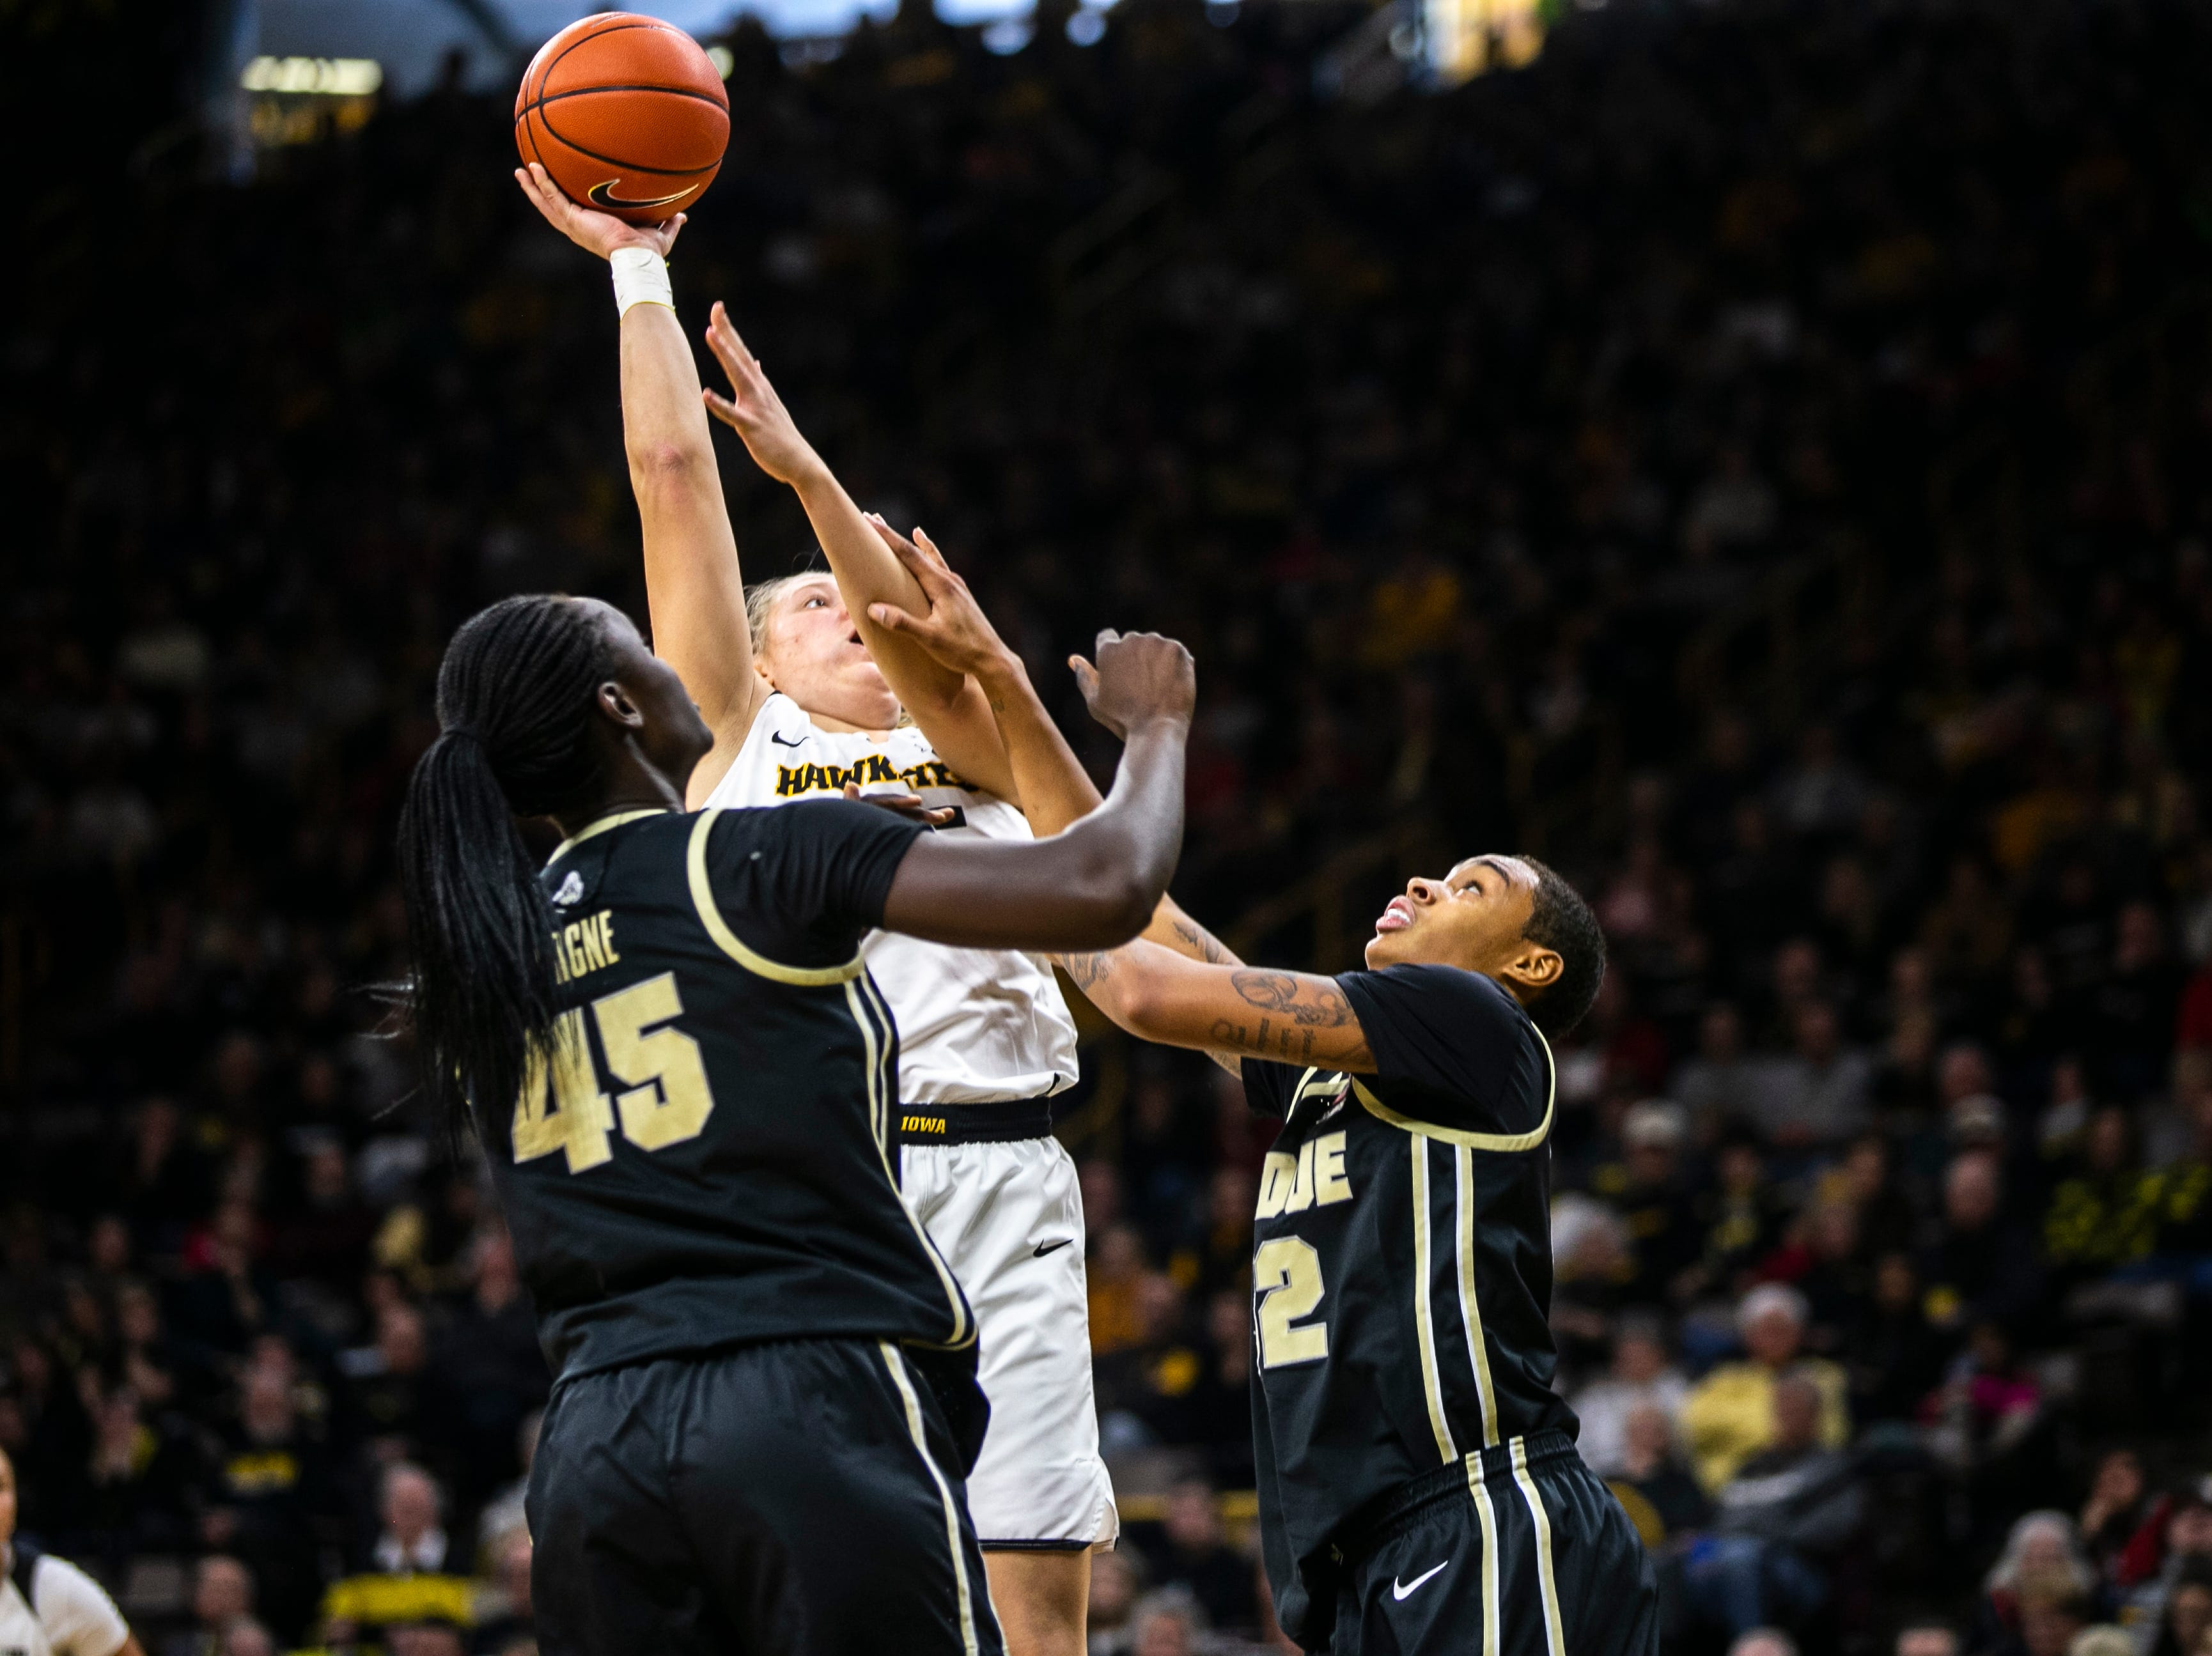 Iowa's Monika Czinano (25) gets defended by Purdue center Fatou Diagne (45) and forward Ae'Rianna Harris (32) during a NCAA Big Ten Conference women's basketball game on Sunday, Jan. 27, 2019, at Carver-Hawkeye Arena in Iowa City, Iowa.